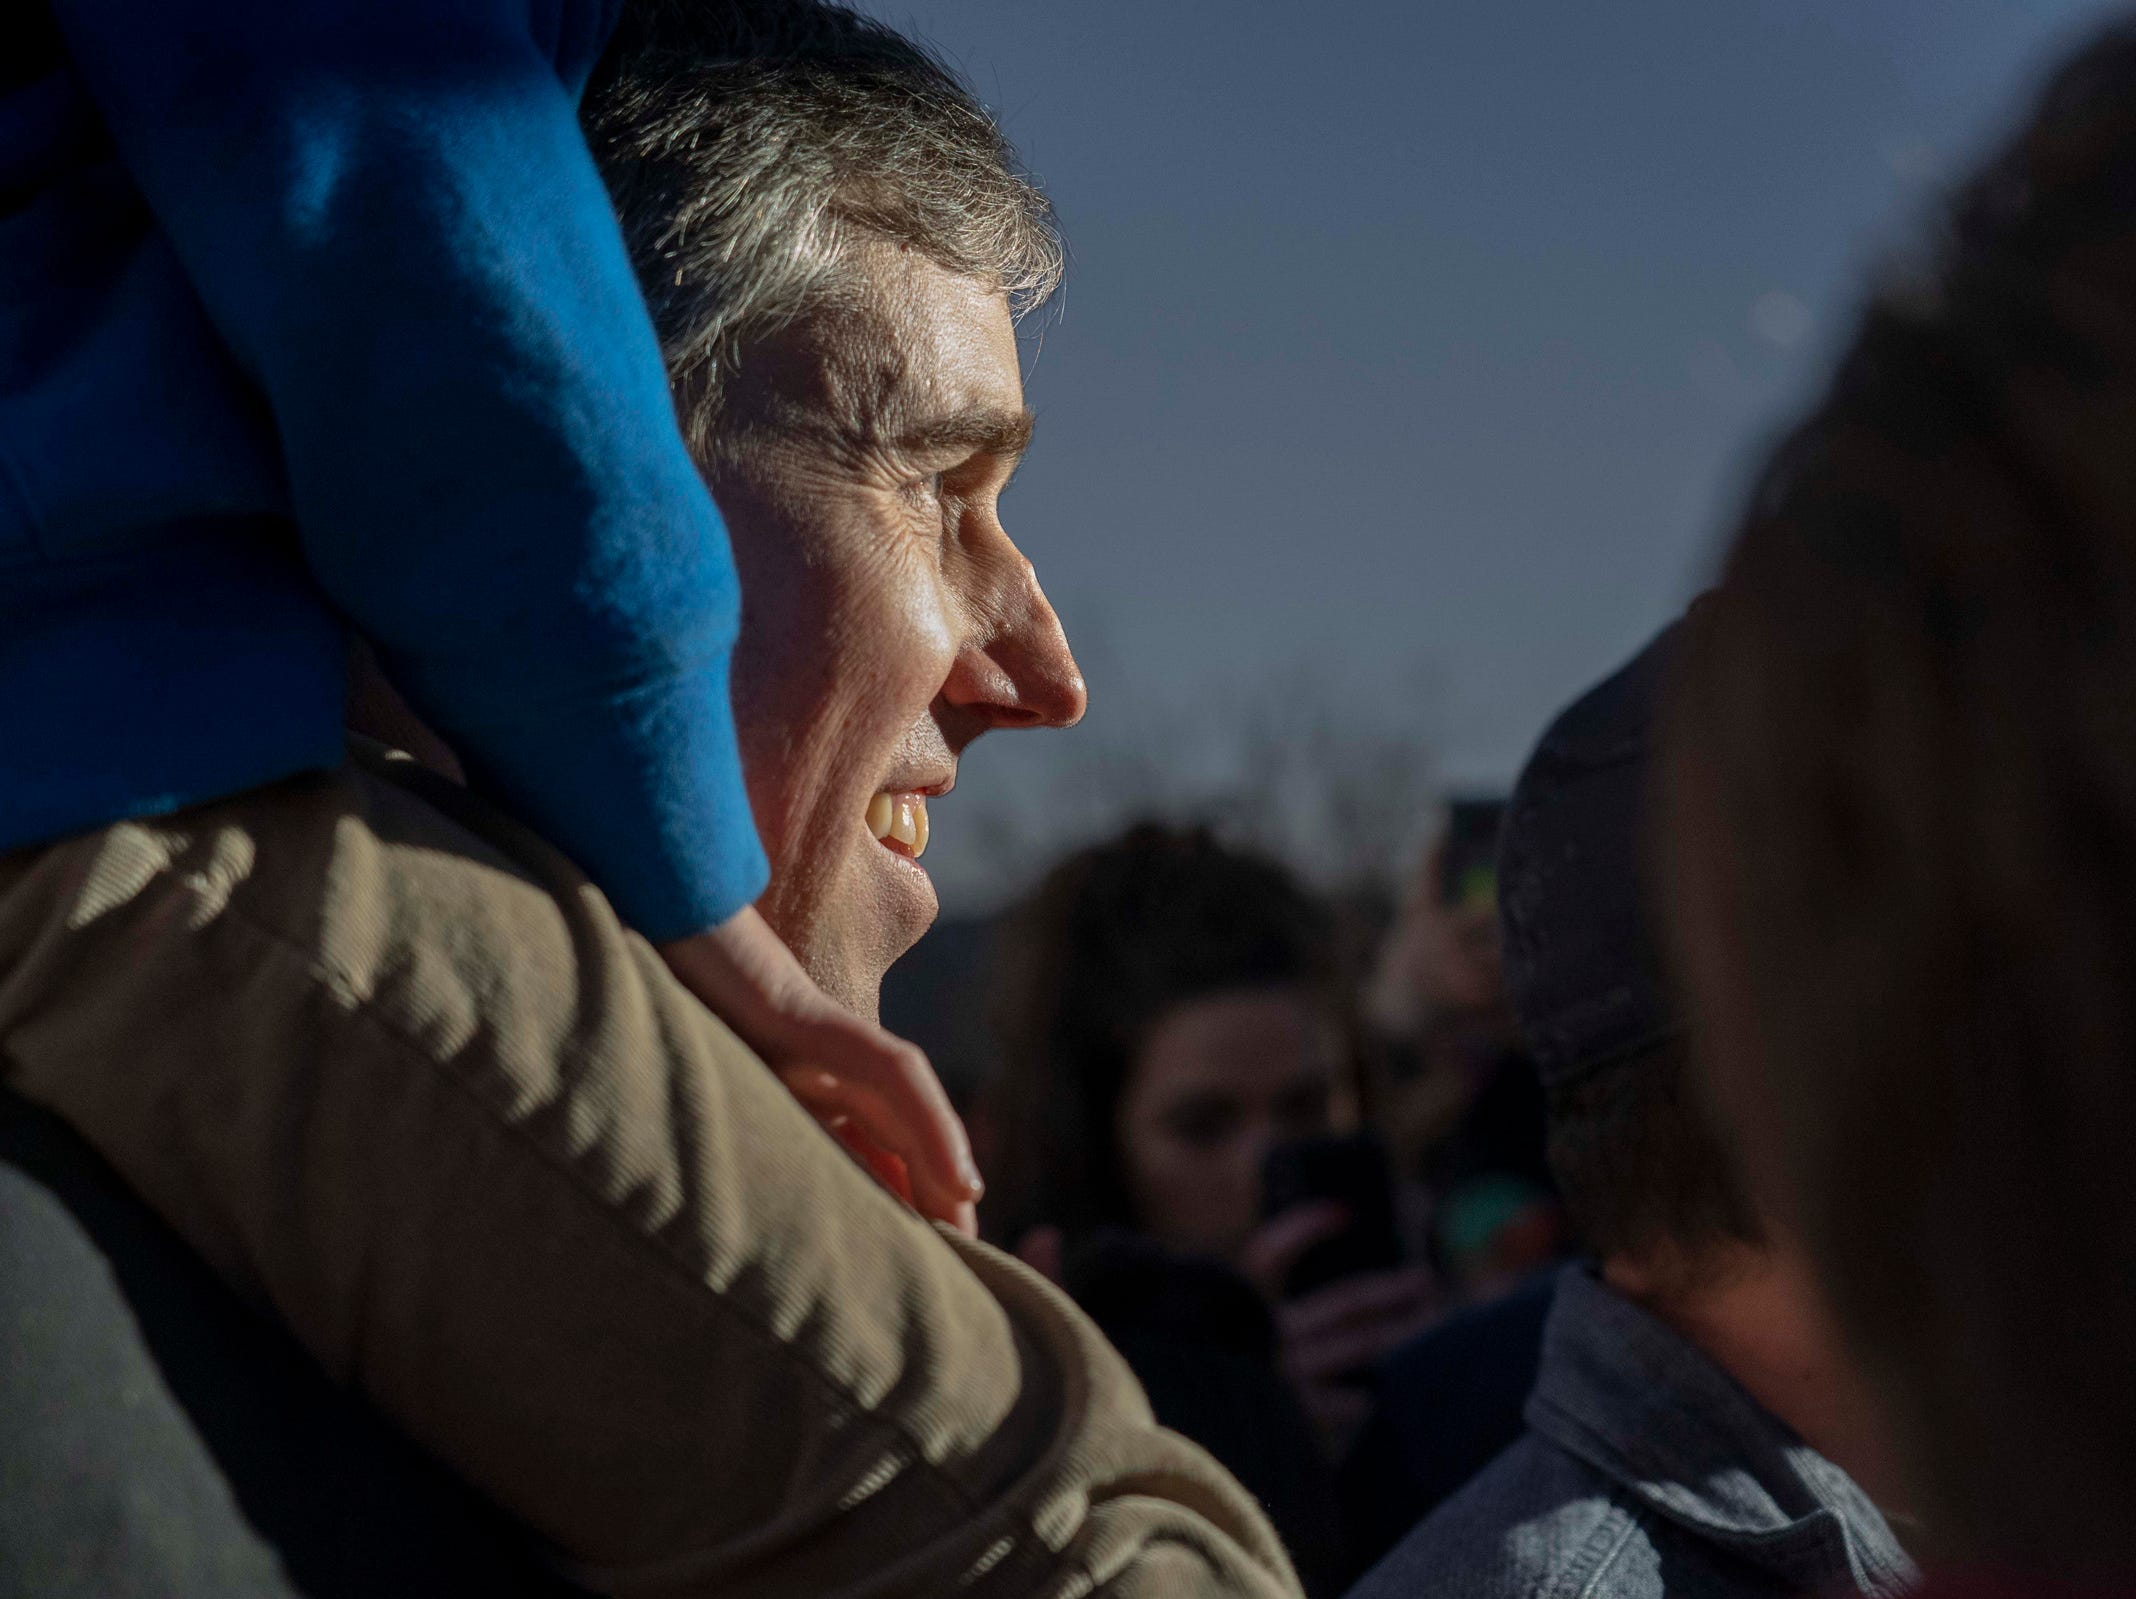 2/11/19 5:58:05 PM -- El Paso, TX, U.S.A  -- A counter-rally led by former U.S. Senate candidate Beto O'Rourke, holds his son Henry, joined the March for Truth with hundreds of people along with Border Network for Human Rights, Women's March, to protest against President Trump campaign rally near El Paso County Coliseum on Feb. 11, 2019. Photo by Nick Oza, Gannett